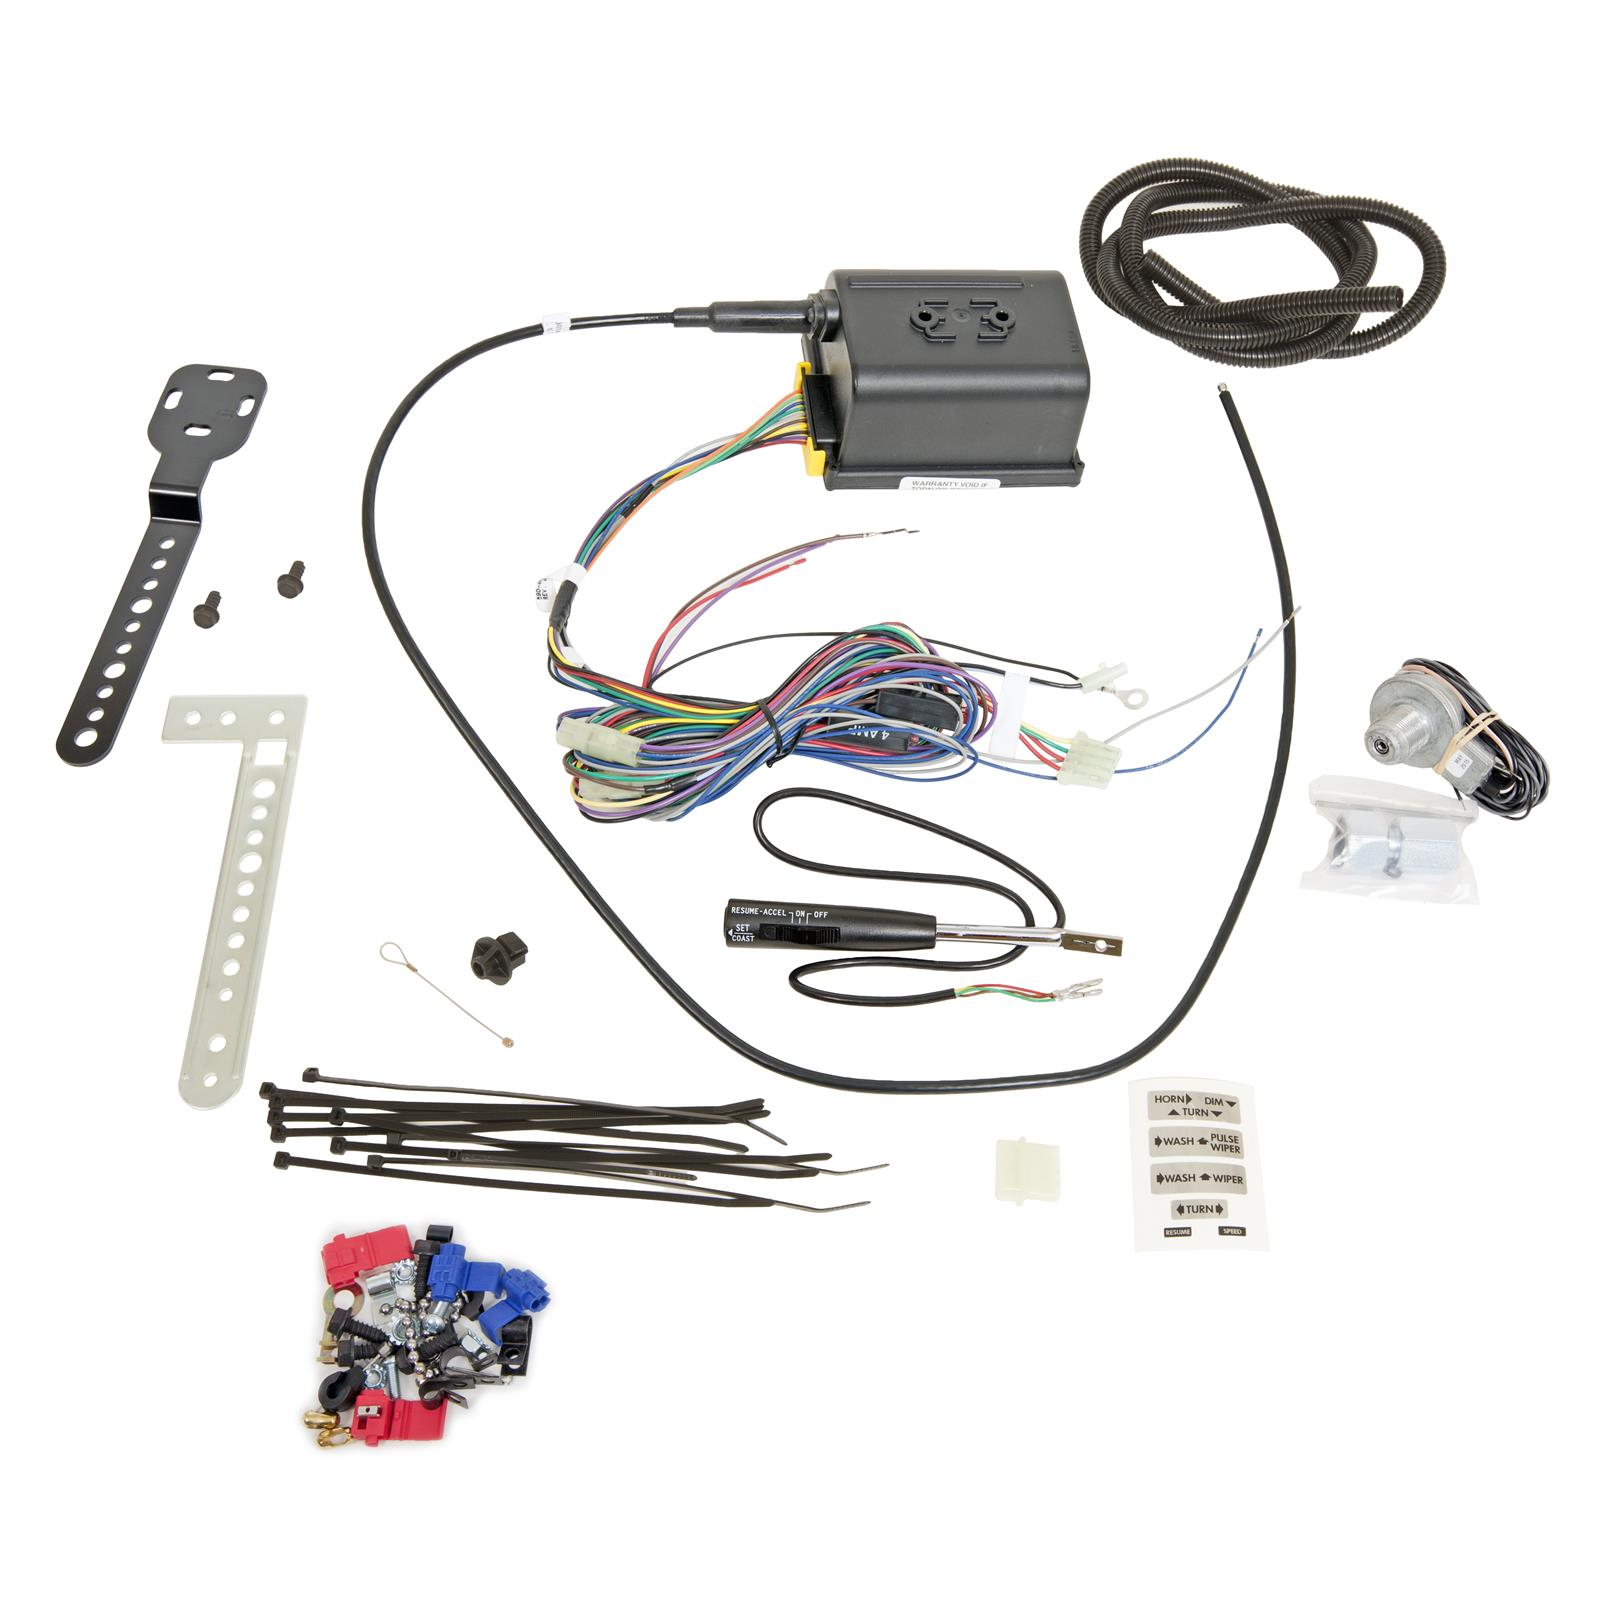 Dakota Digital Cruise Control Kits For Cable Driven Speedometers Crs Wire Harness Resume 2000 3 Free Shipping On Orders Over 99 At Summit Racing